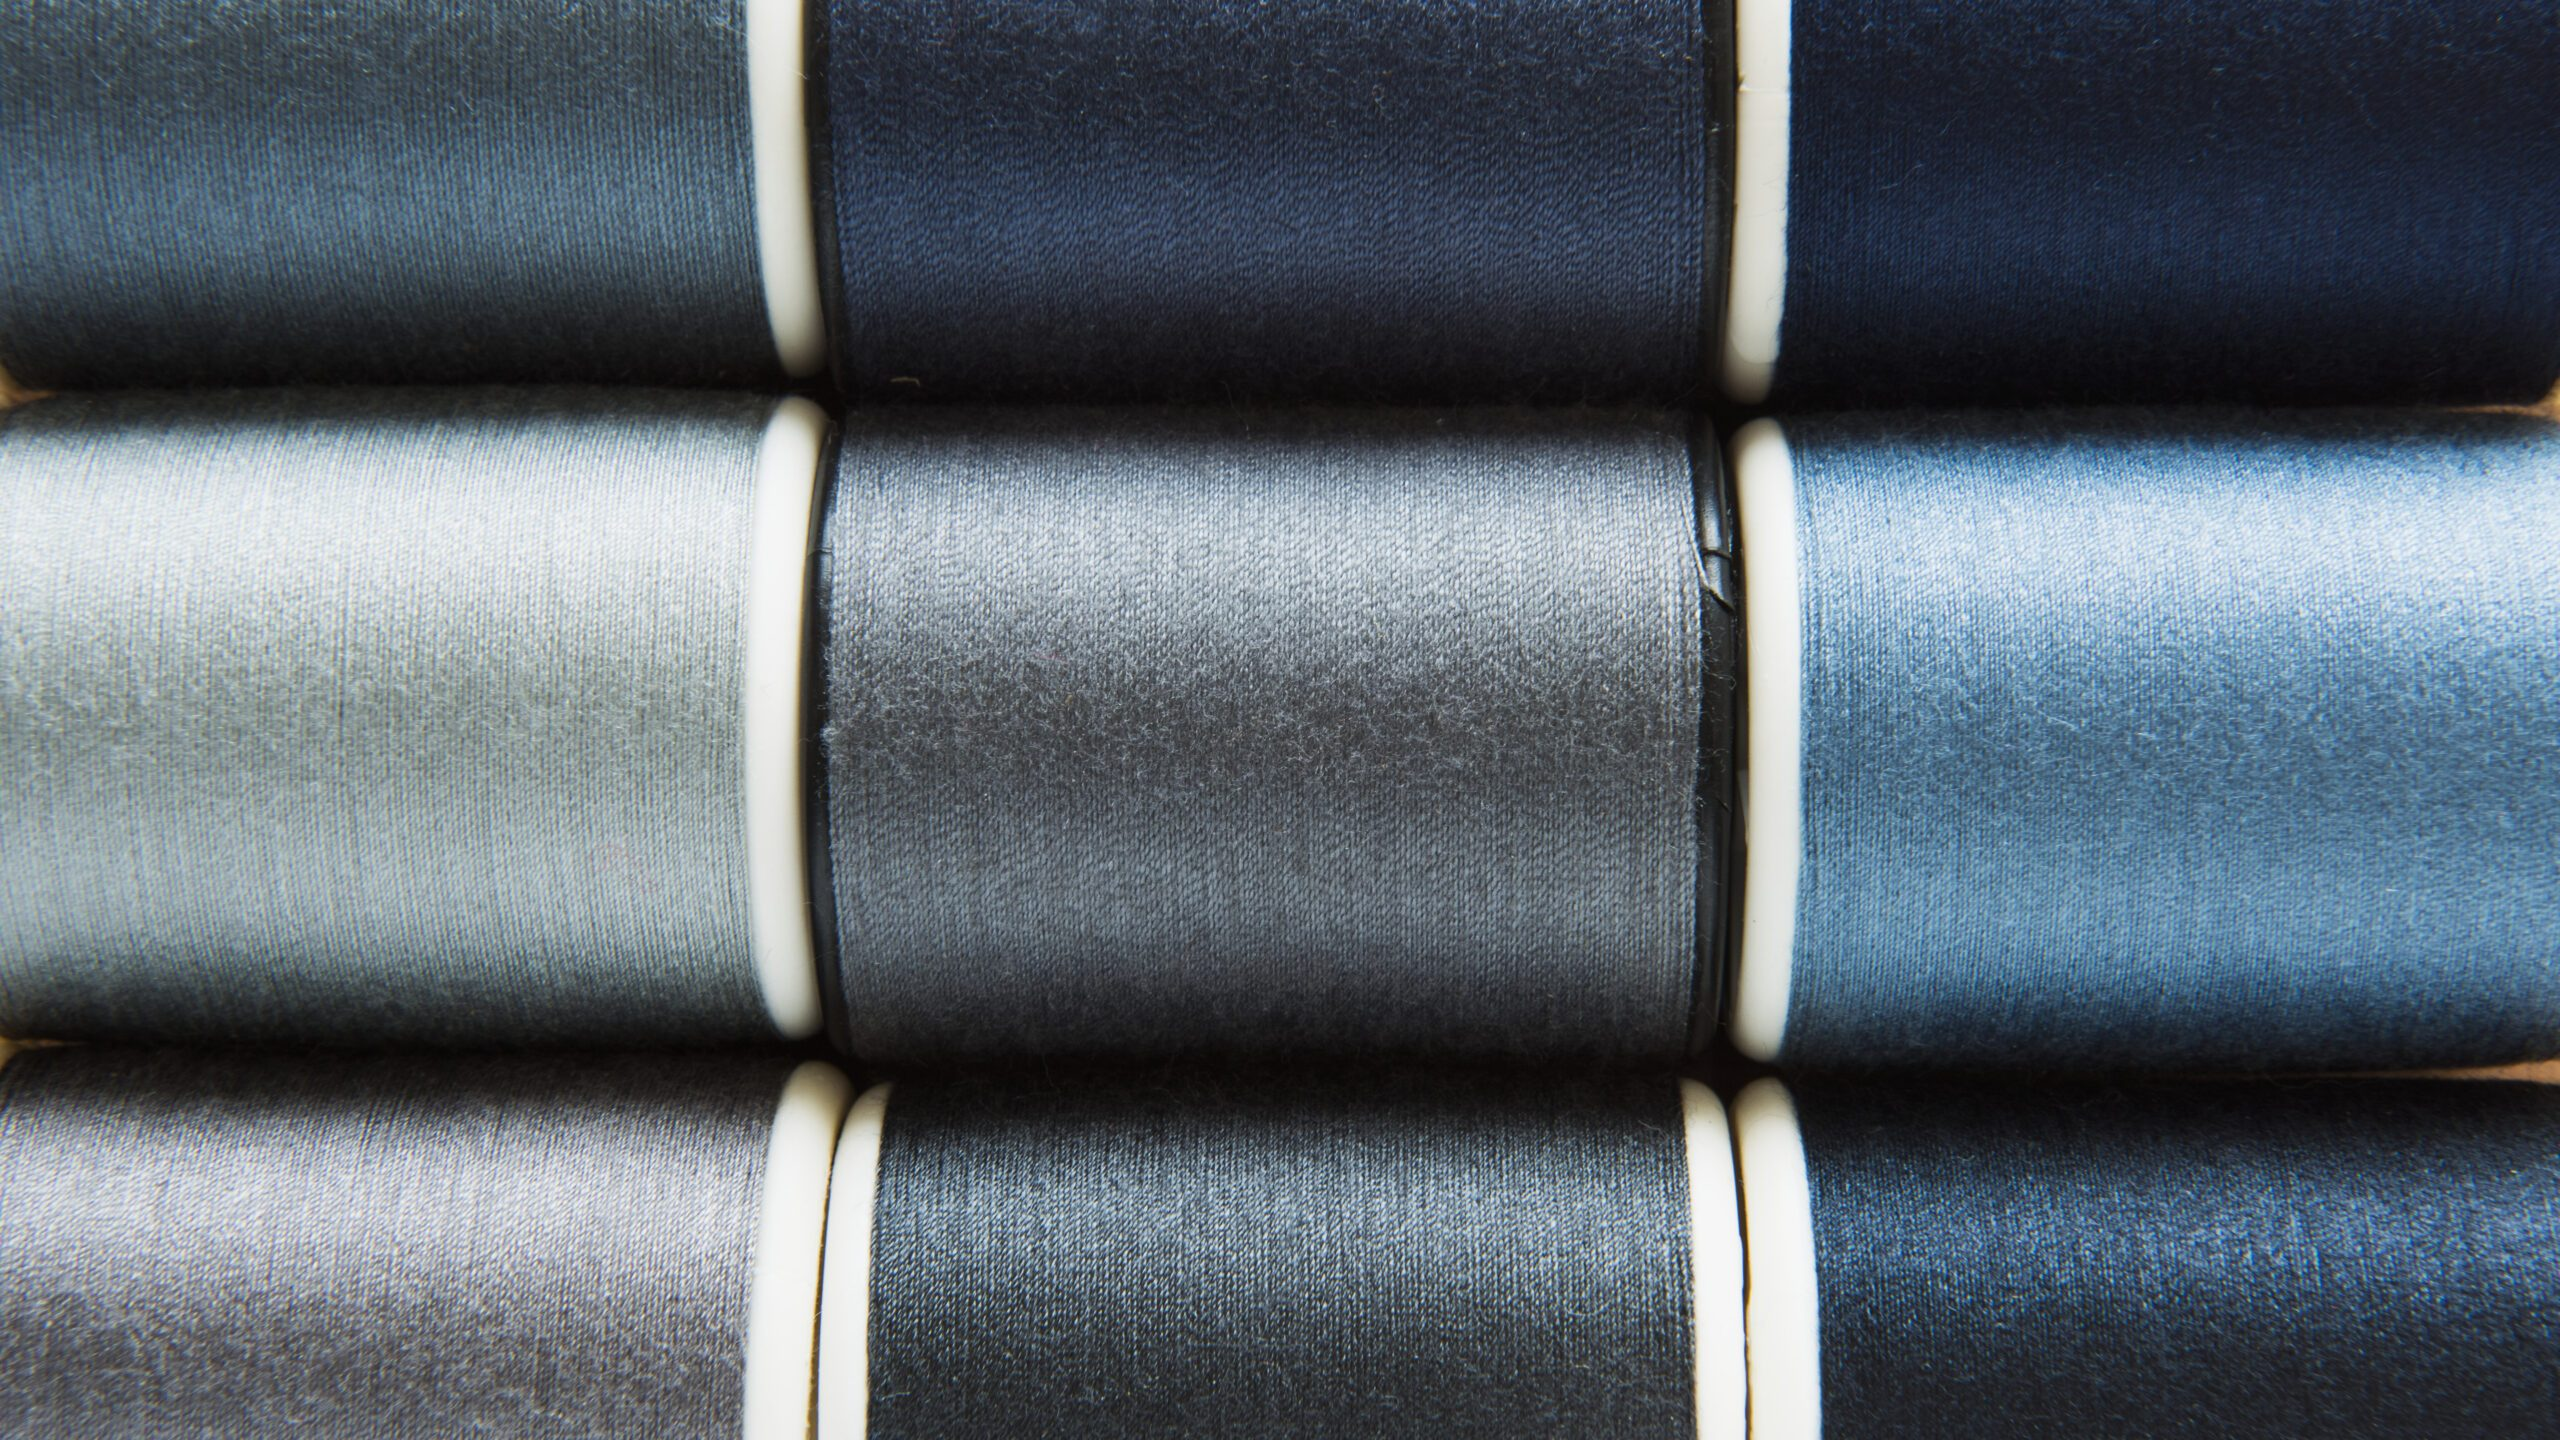 shades gray blue sewing threads background closeup